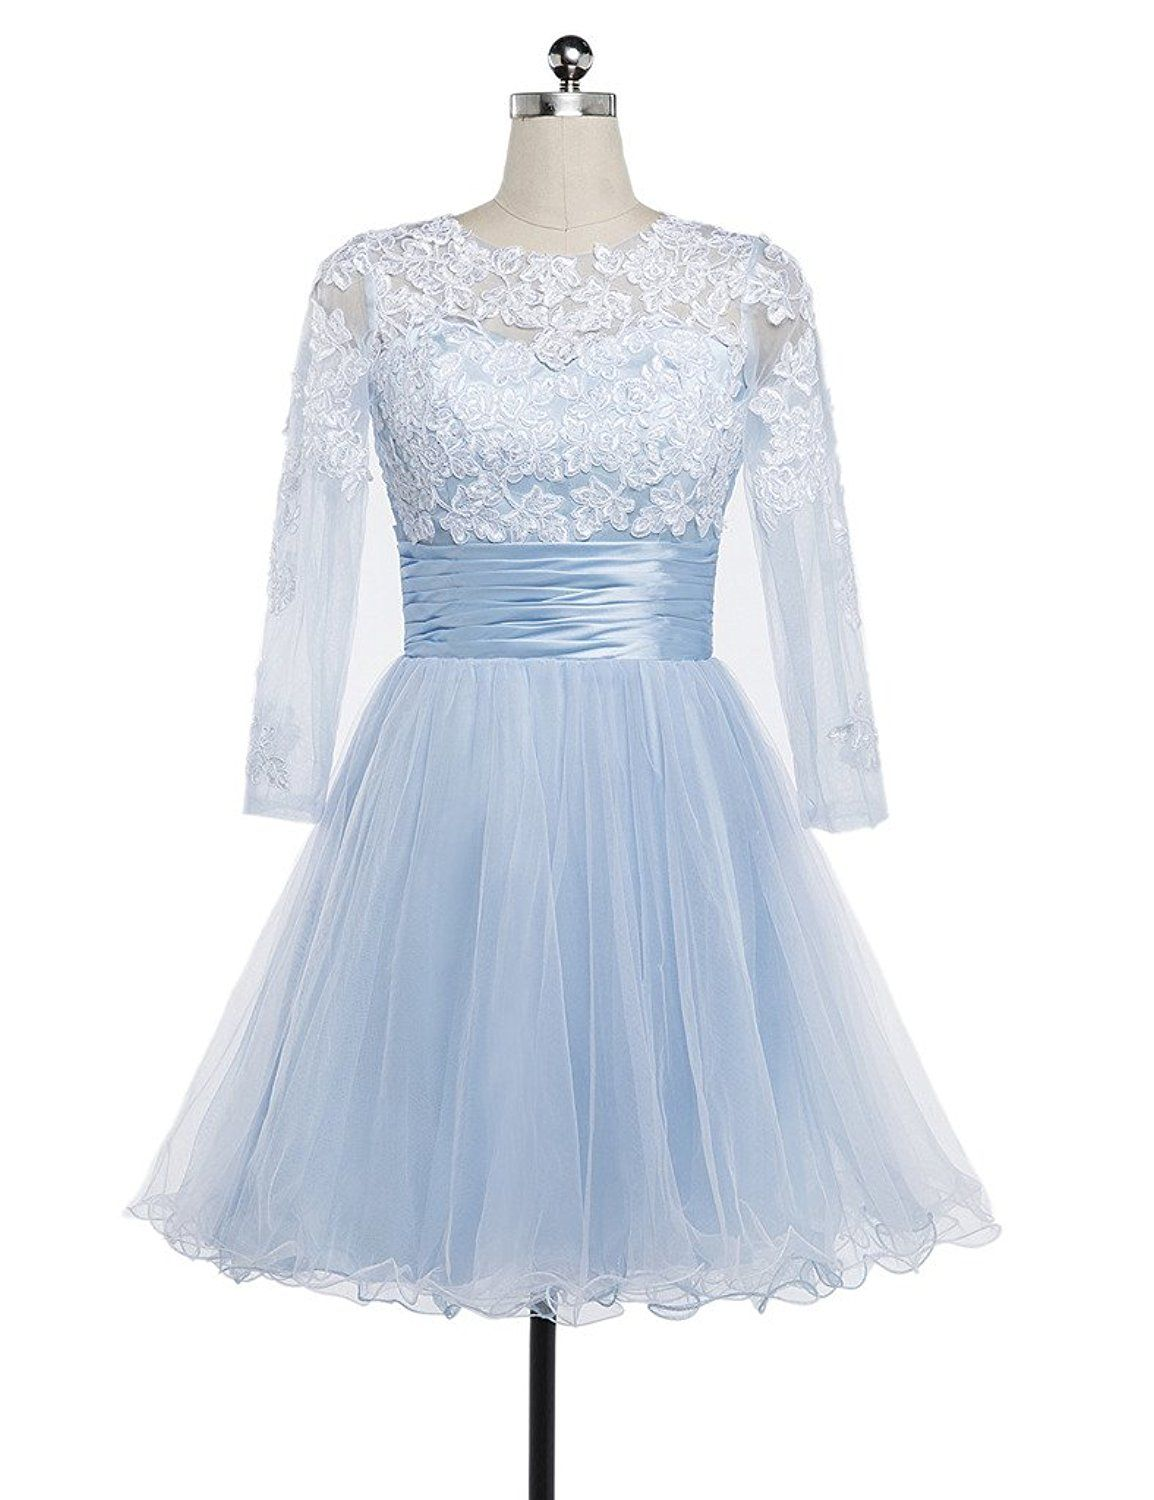 Charmingbridal full sleeve light blue prom dress short homecoming